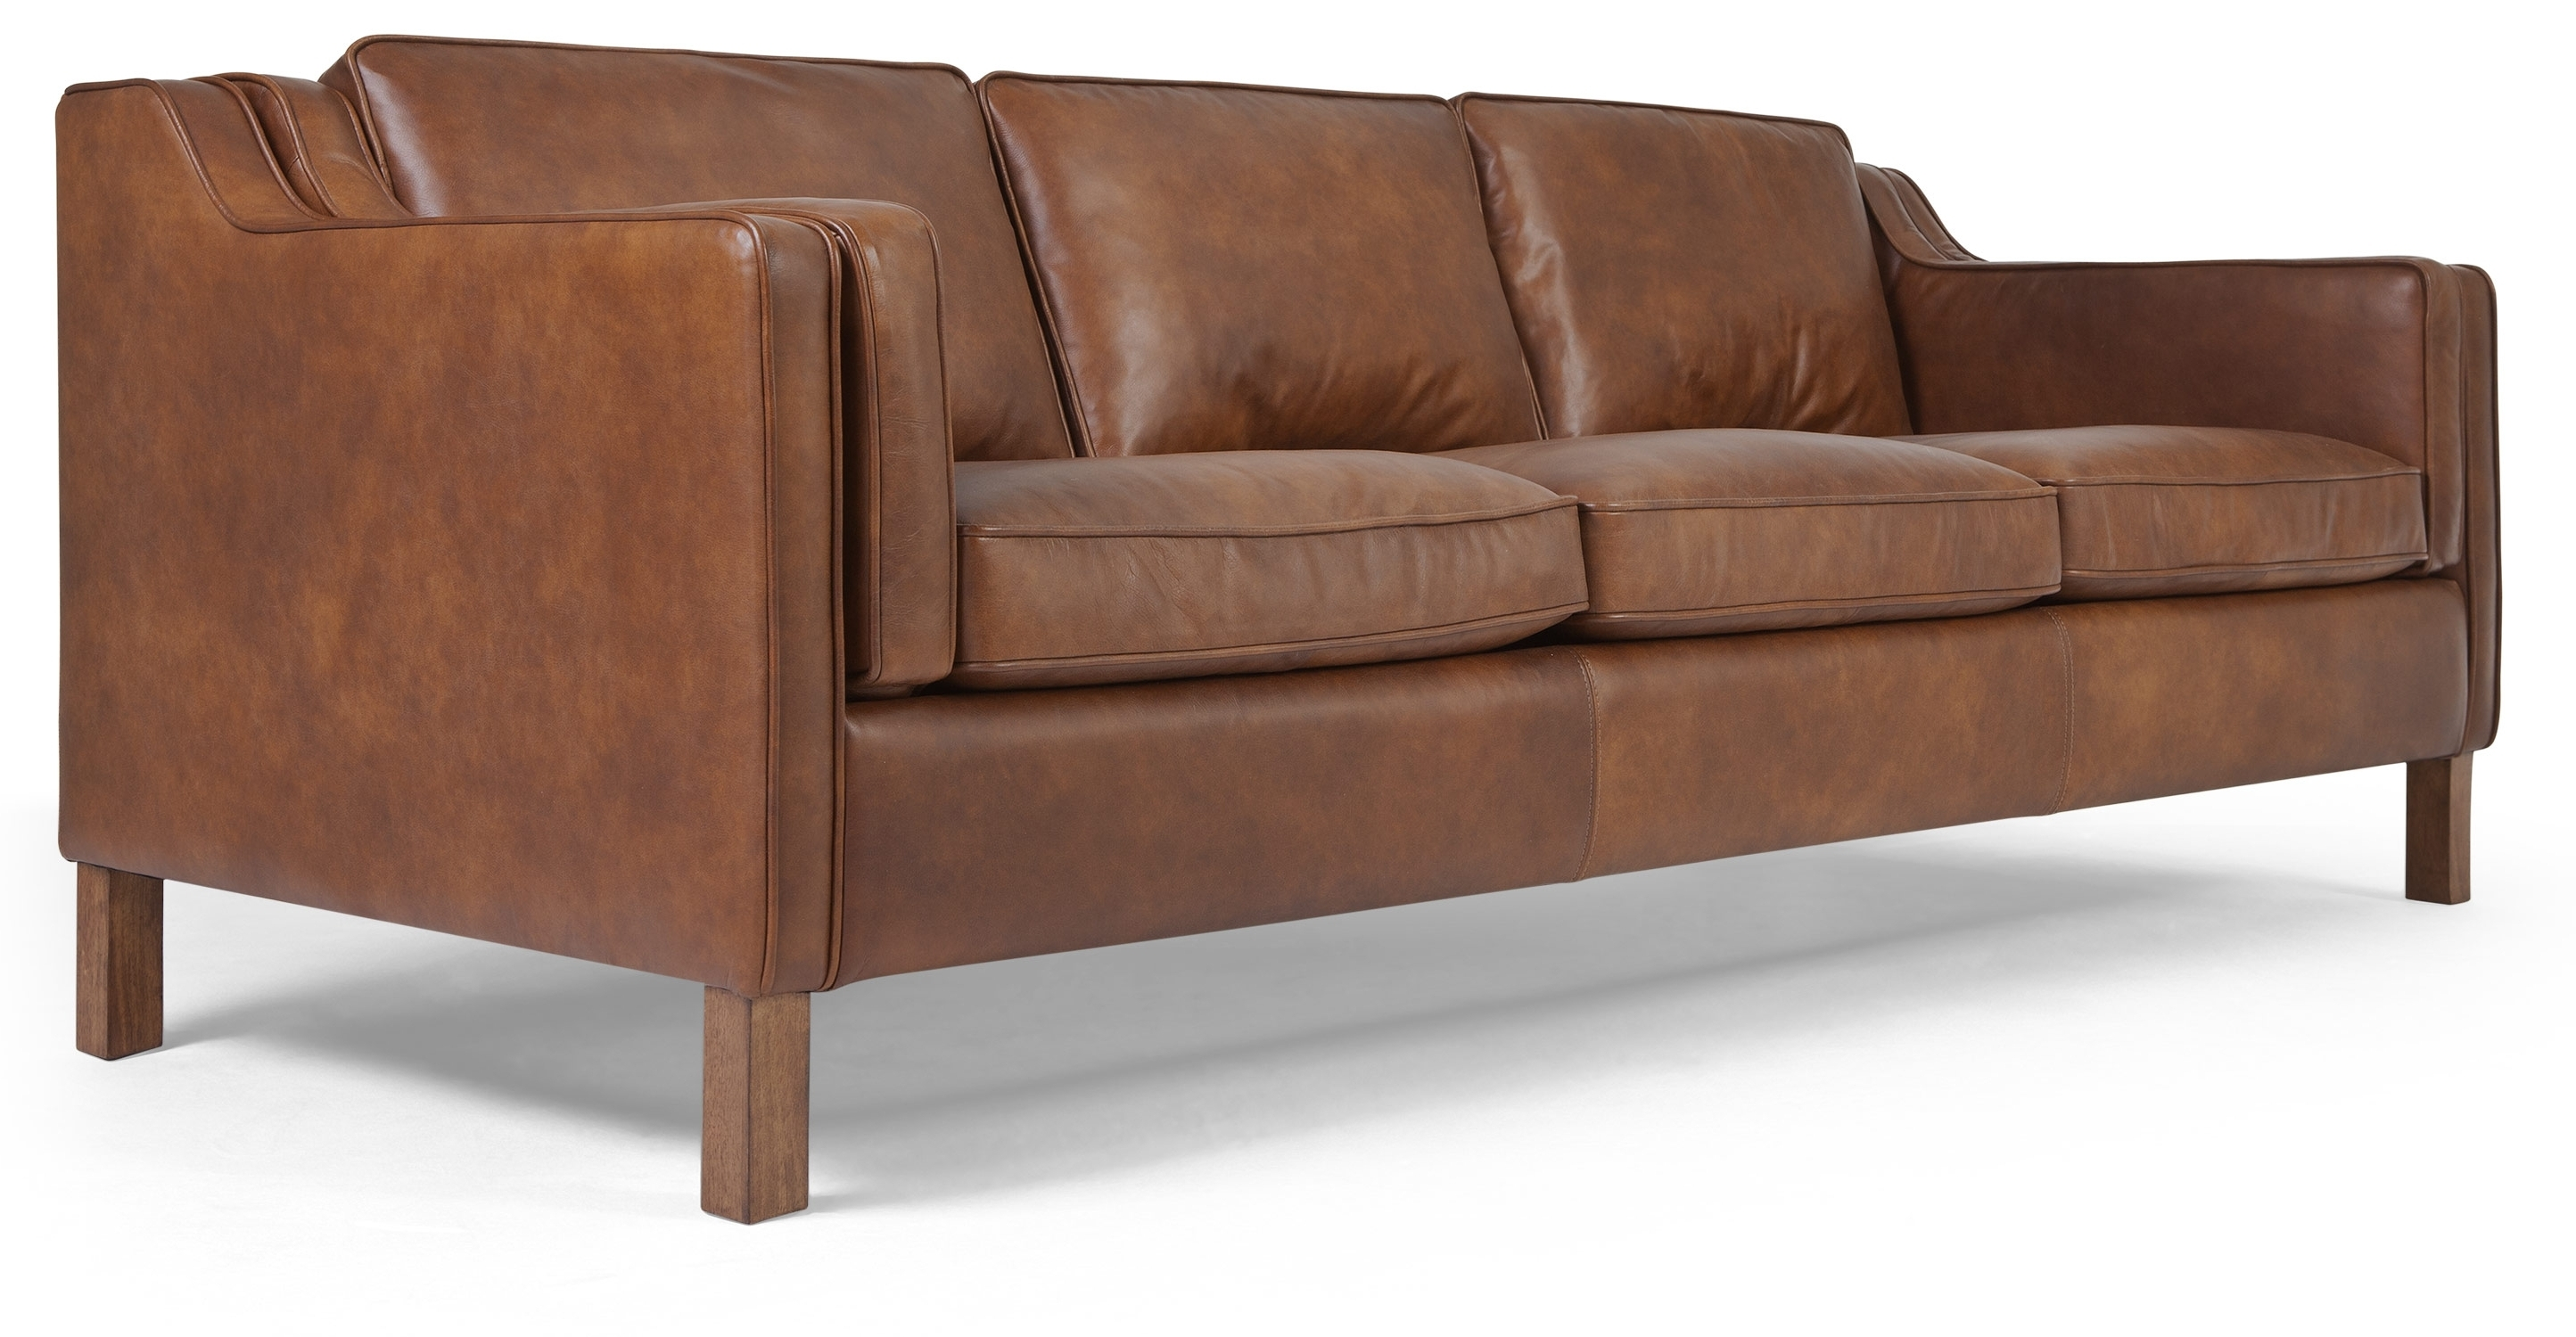 Light Tan Leather Sofas Inside 2018 Furniture : Great Light Brown Leather Sofa 40 For Your Living Room (View 6 of 20)